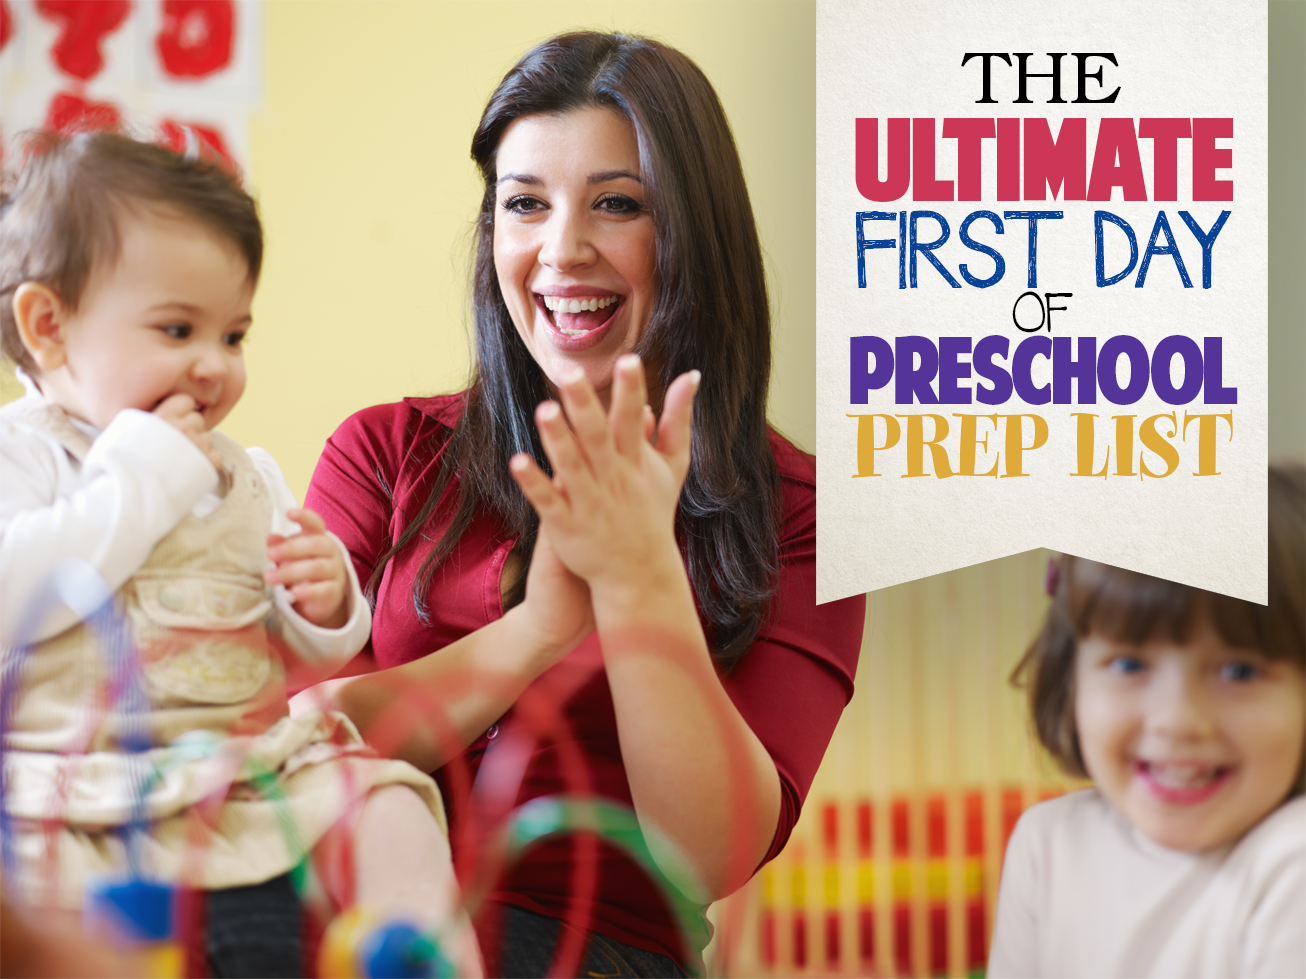 The Ultimate First Day of Preschool Prep List